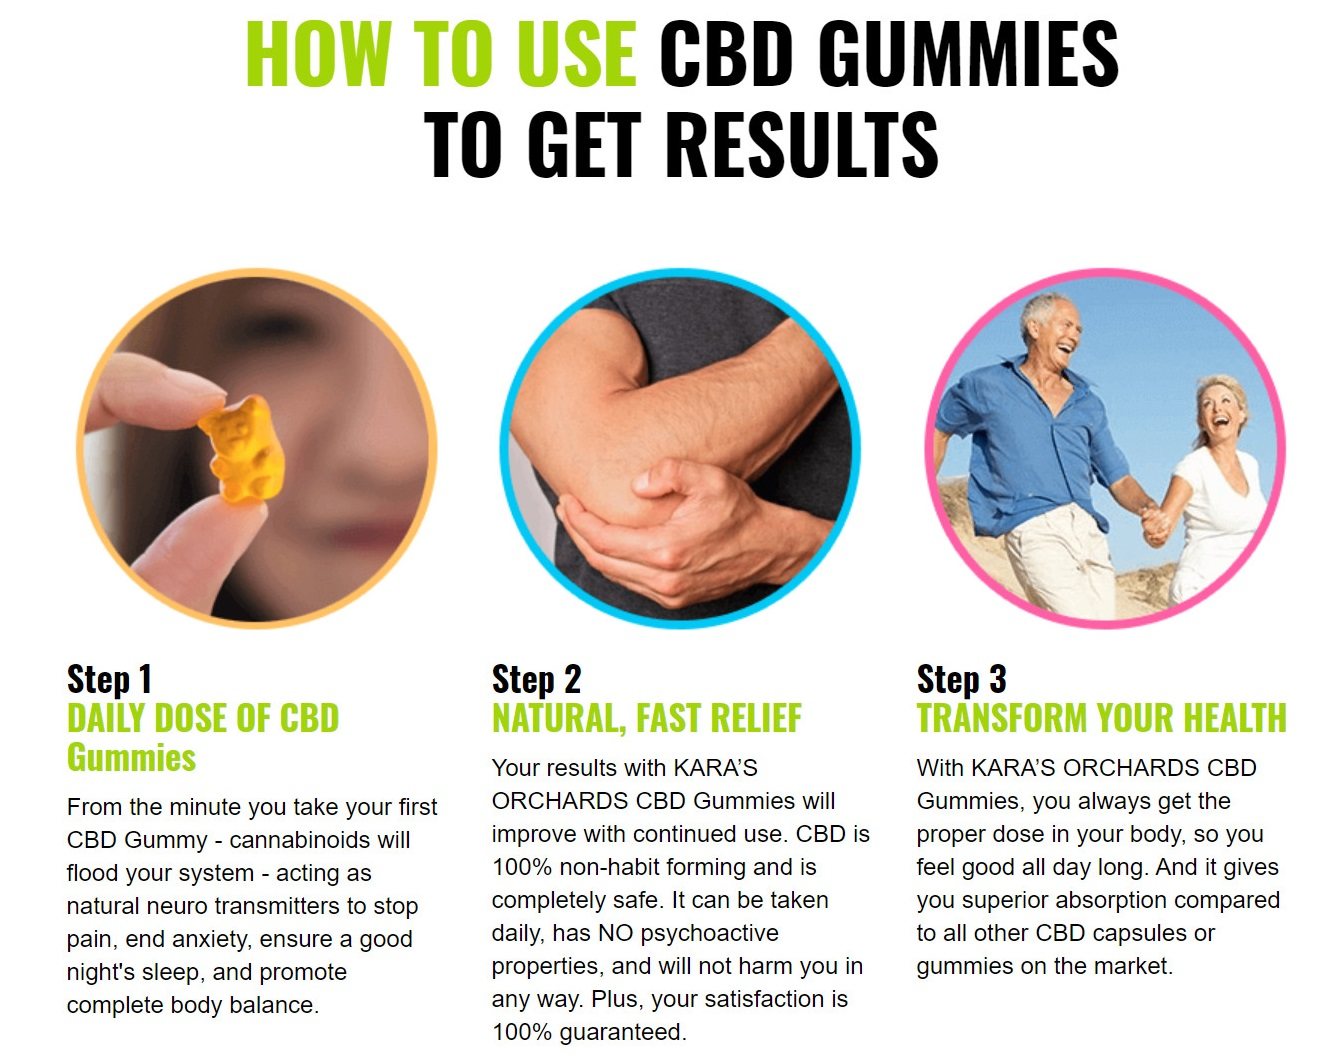 Karas Orchards CBD Gummies Using Steps